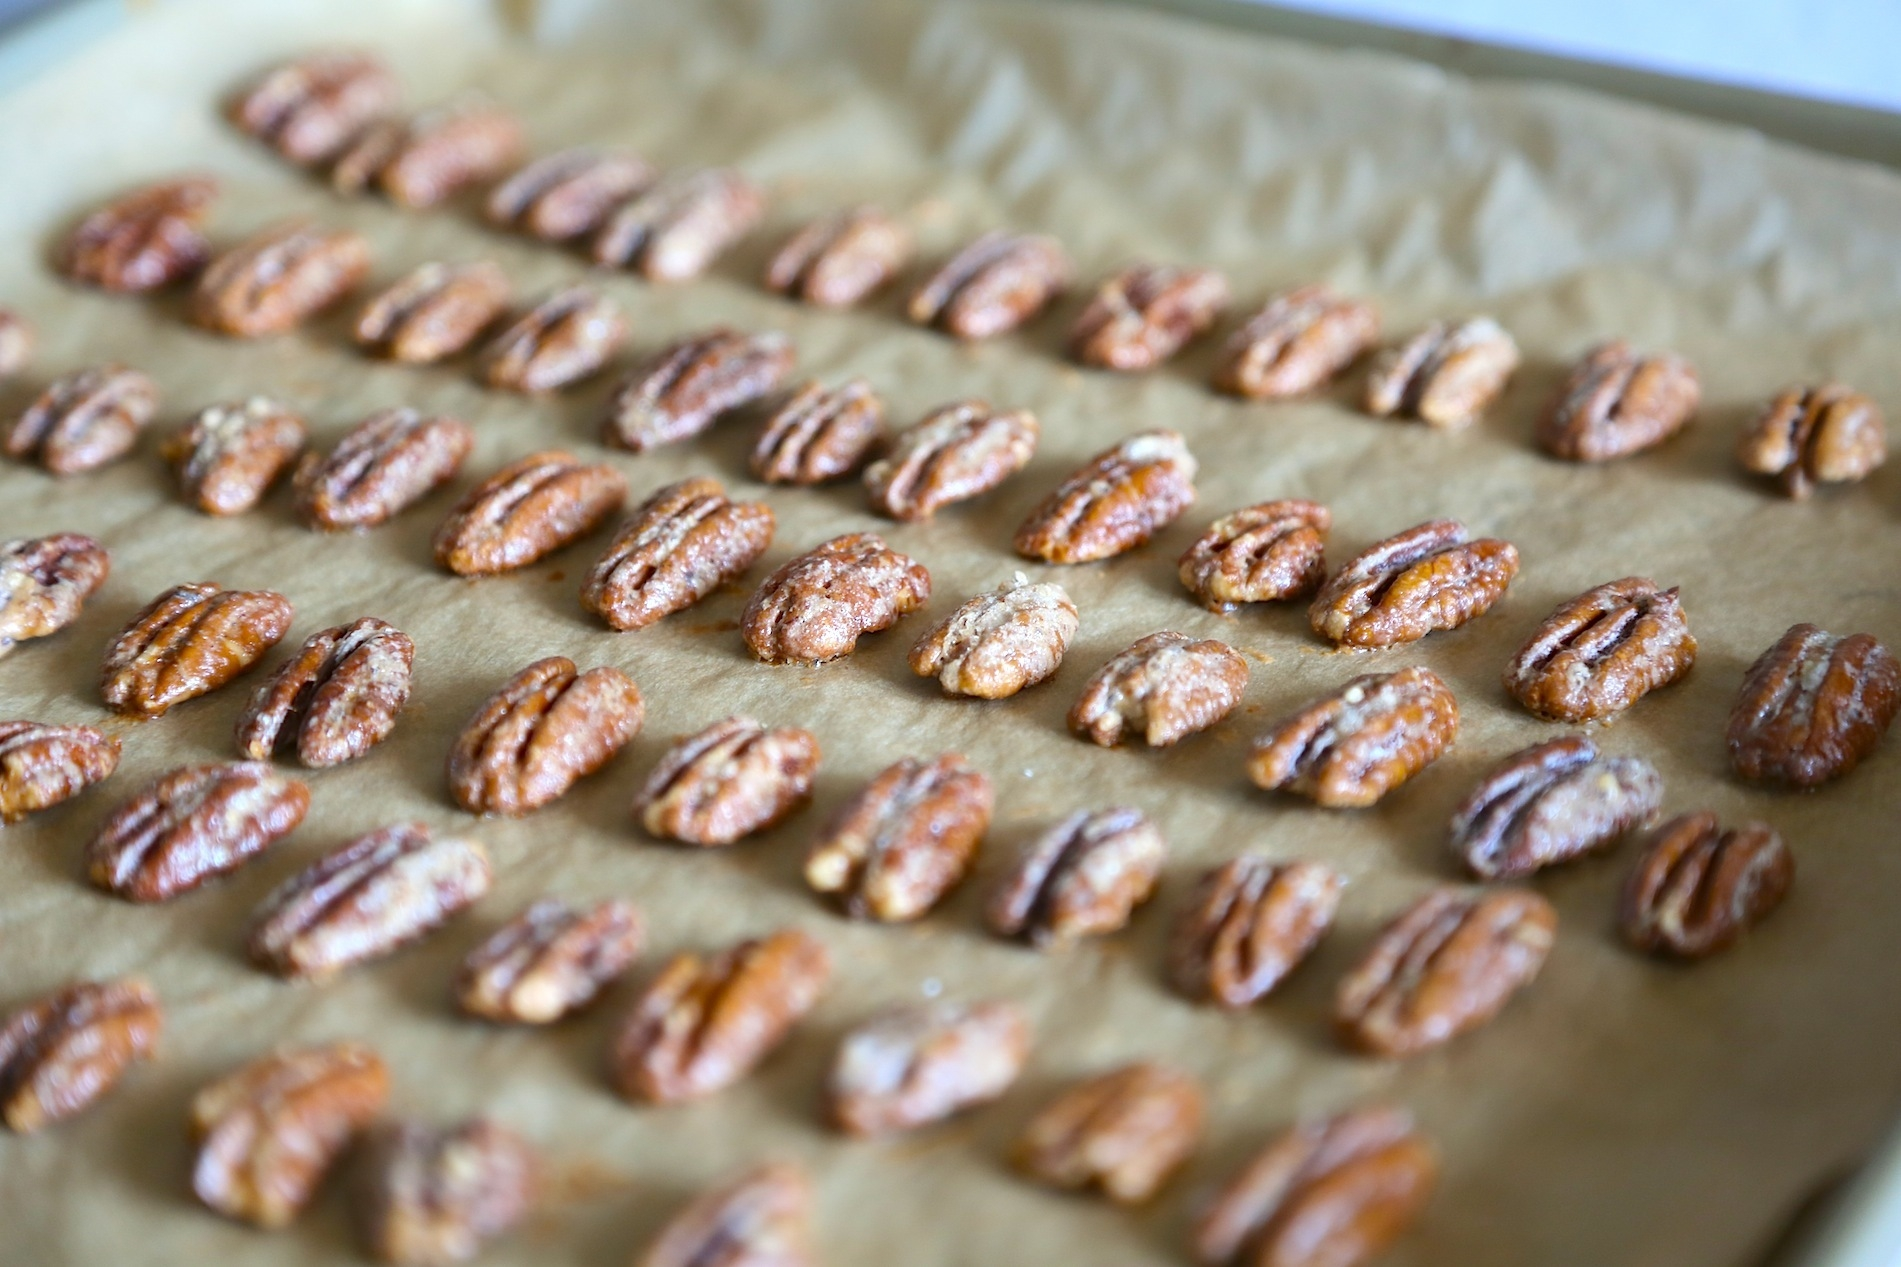 Candied Walnuts and Pecans